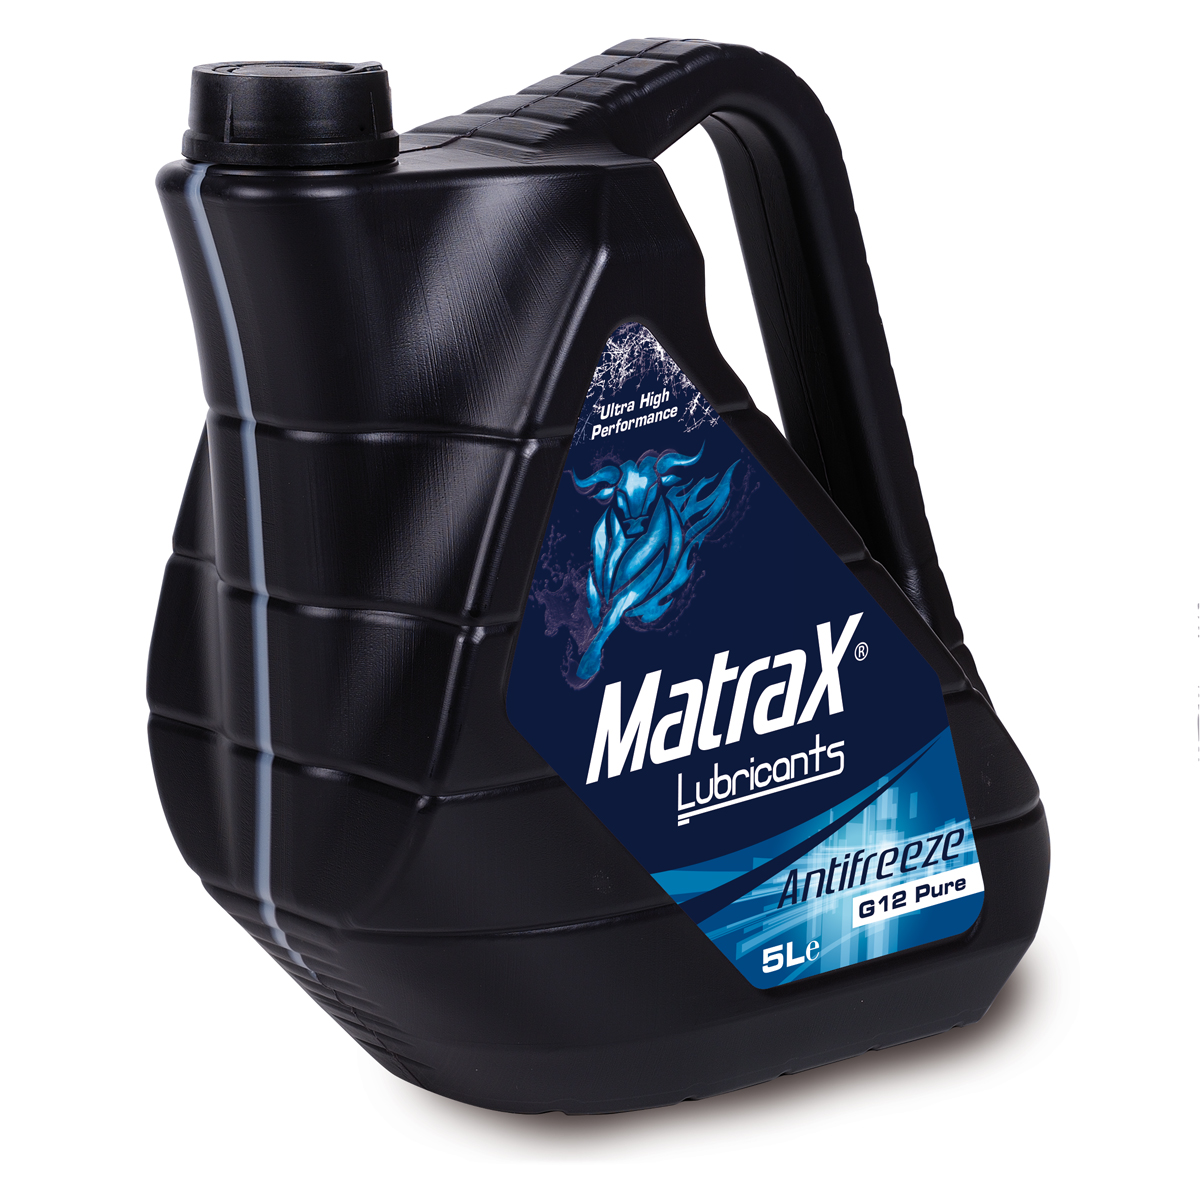 matrax-lubricants-antifreeze-g12-pure-5l